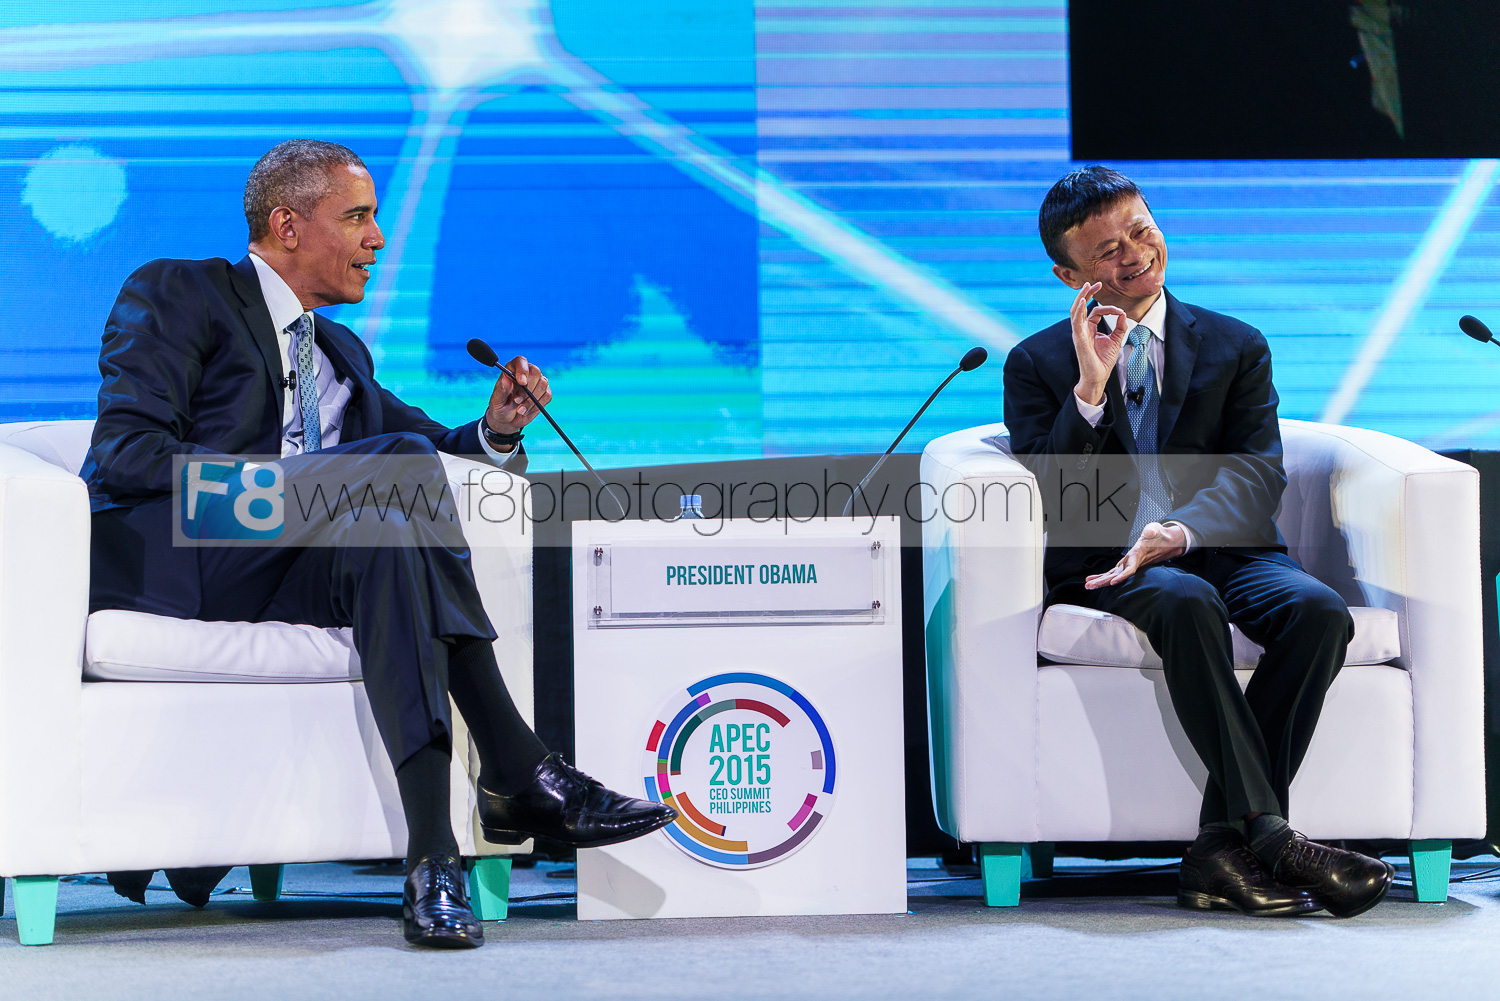 president of the united states on stage with jack ma from alibaba.com